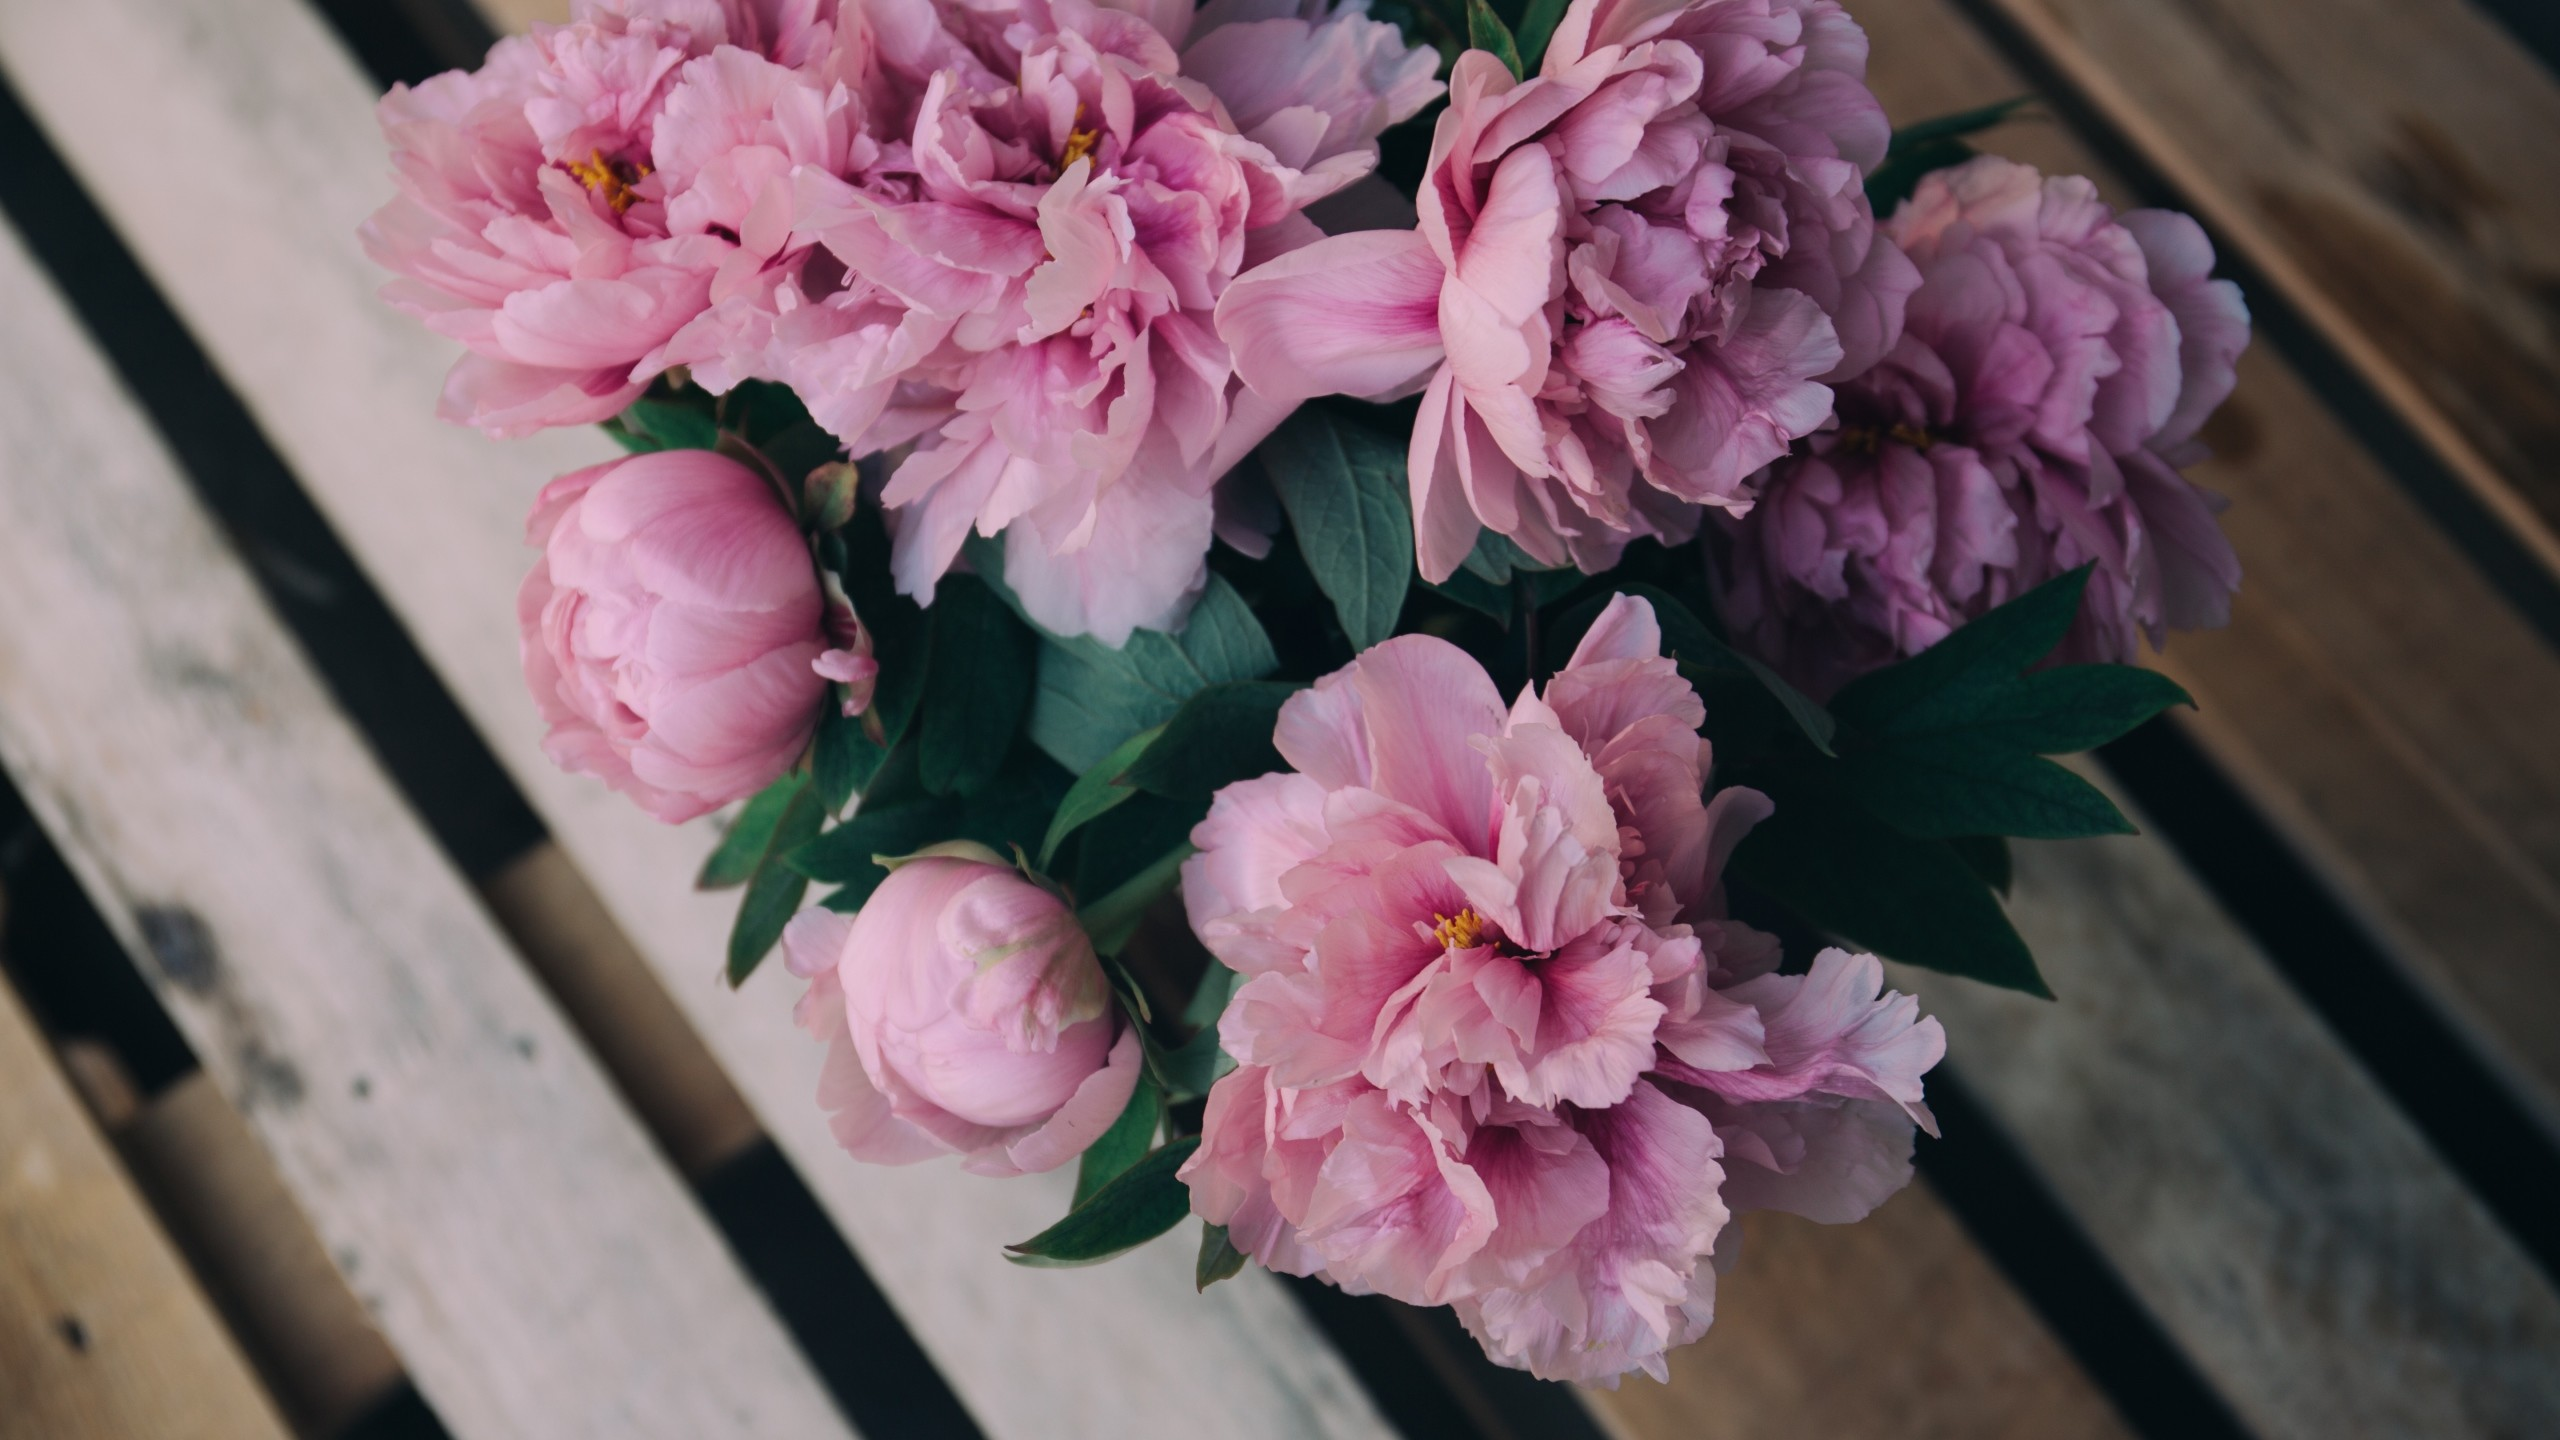 2560x1440  Wallpaper peonies, flowers, bouquet, pink